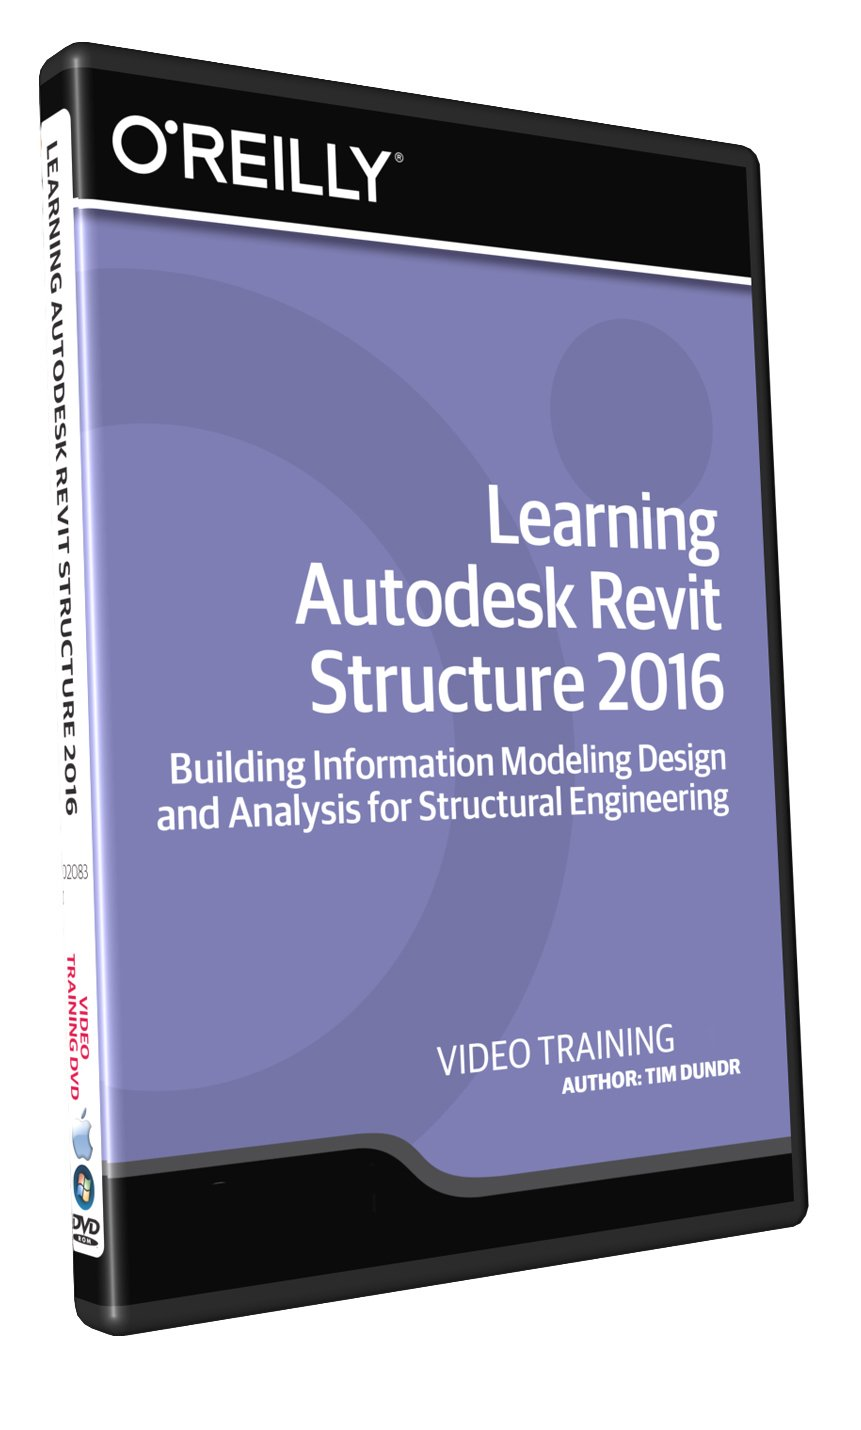 Learning Autodesk Revit Structure 2016 - Training DVD